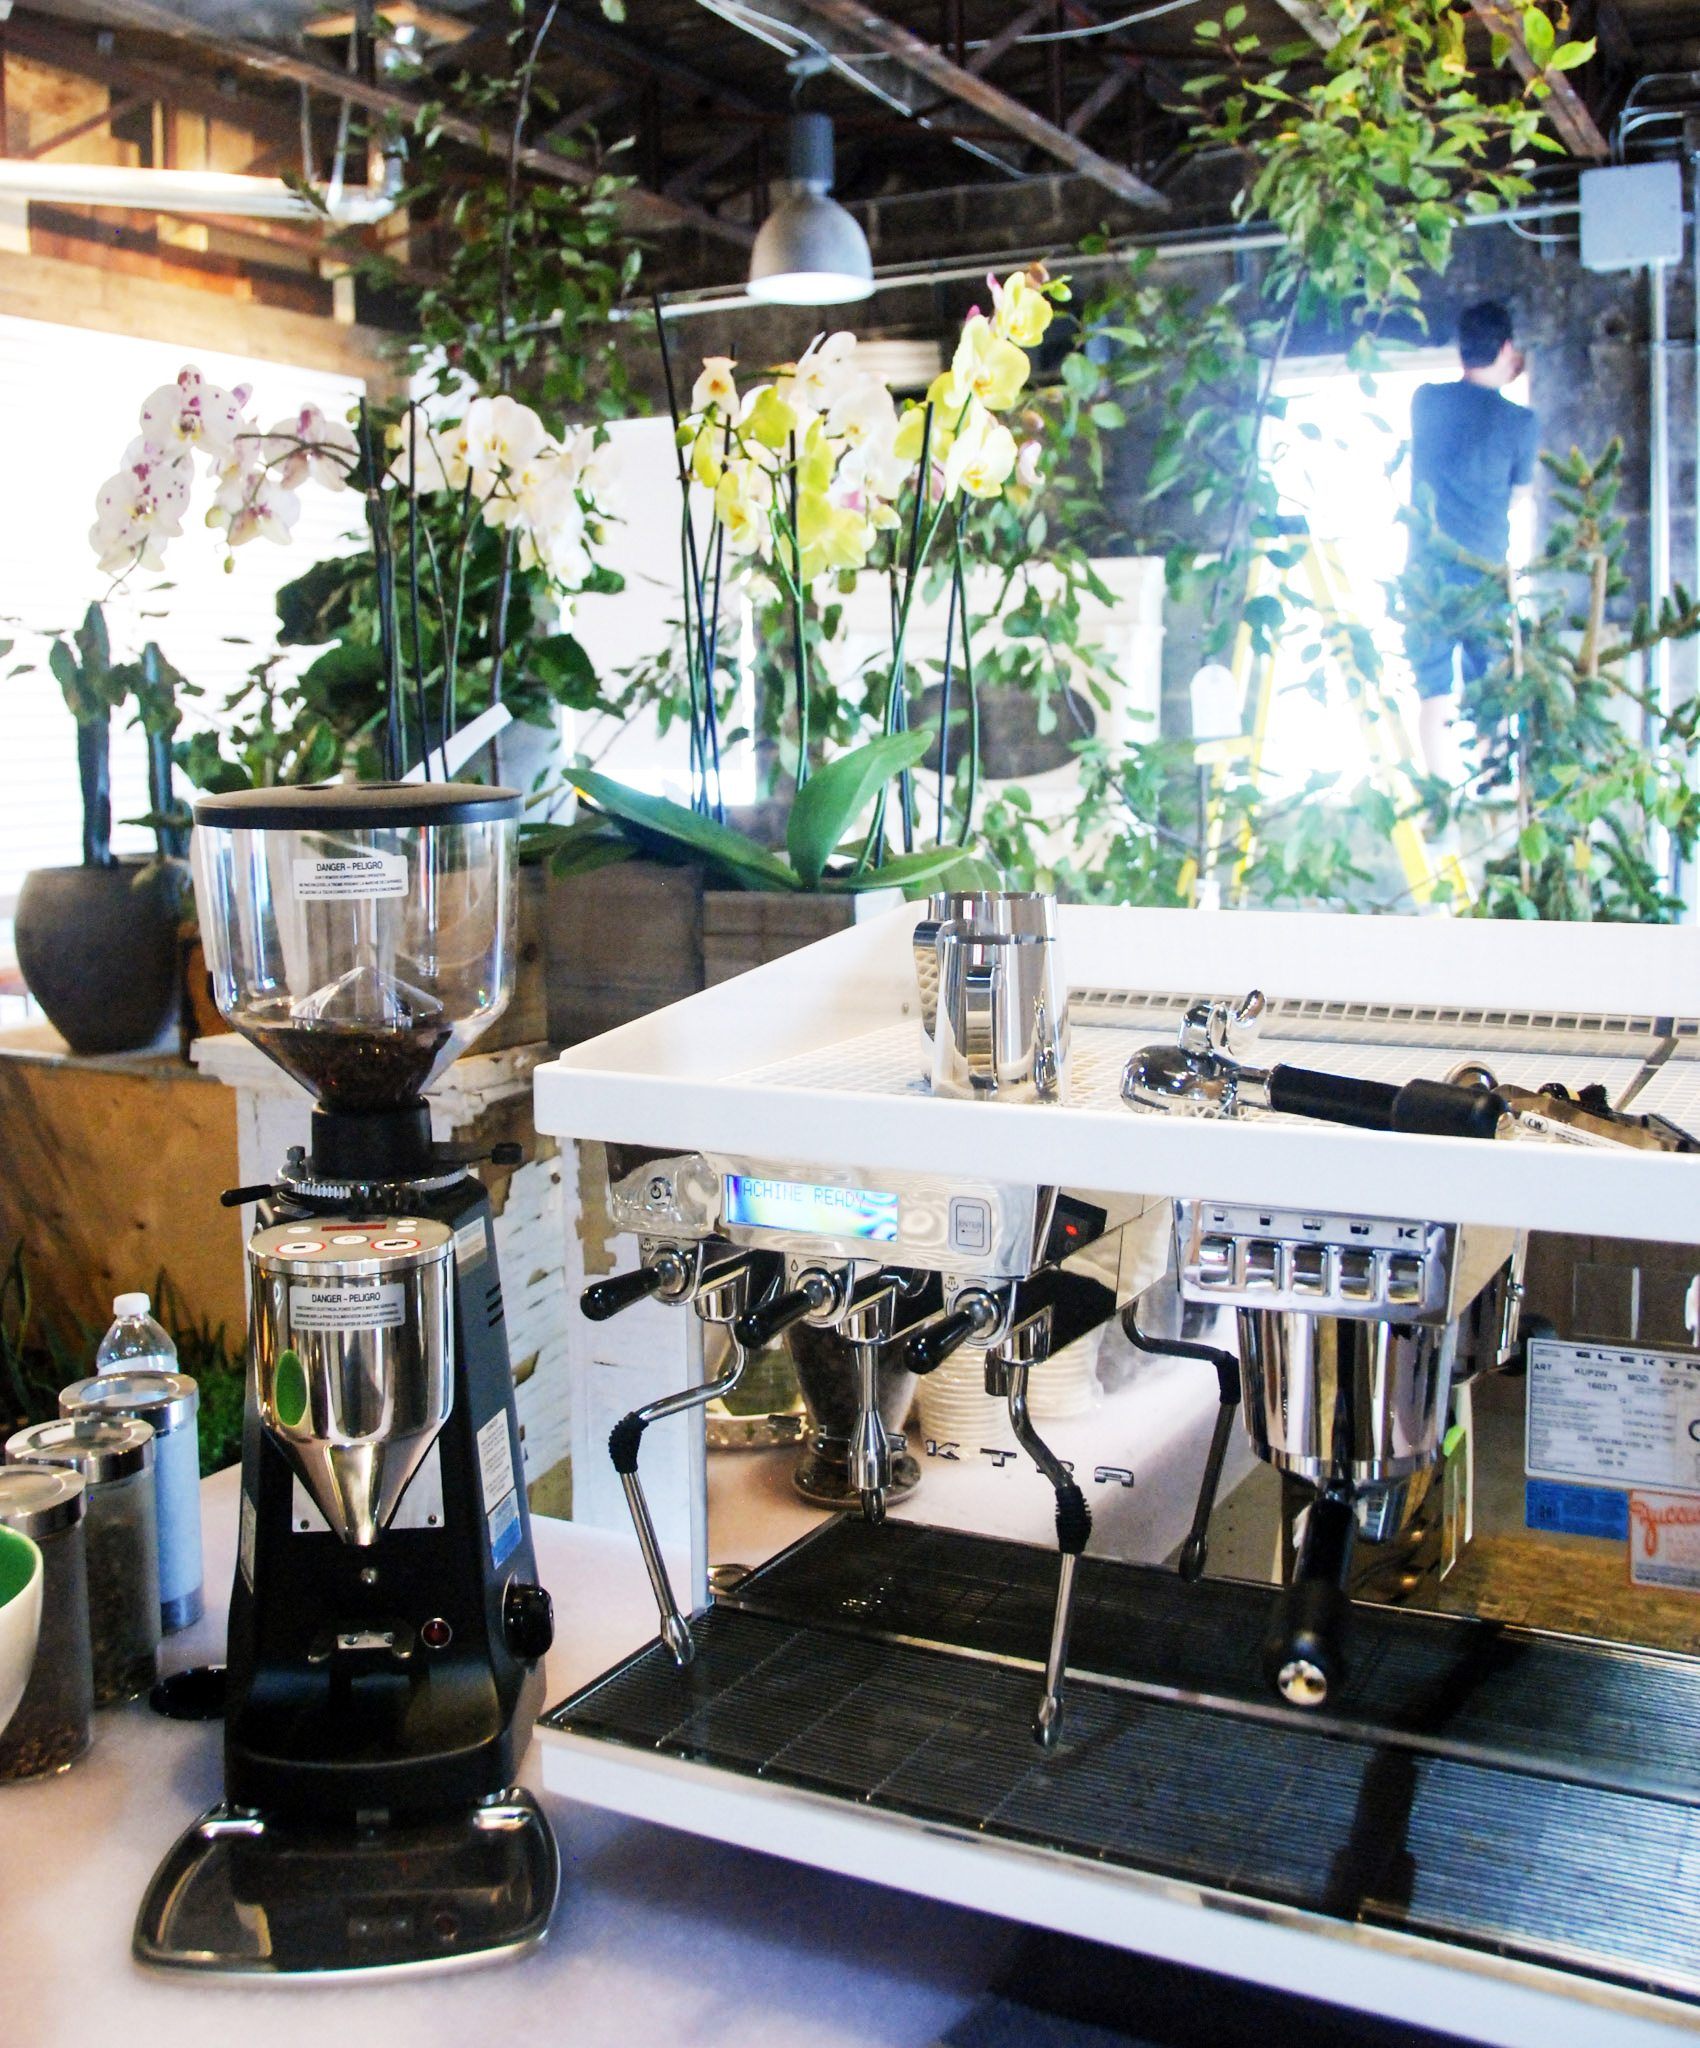 Elektra-Espresso-machine-all-ready-at-Blumenstudio-café-+-floral-west. Photo: Katie Shapiro